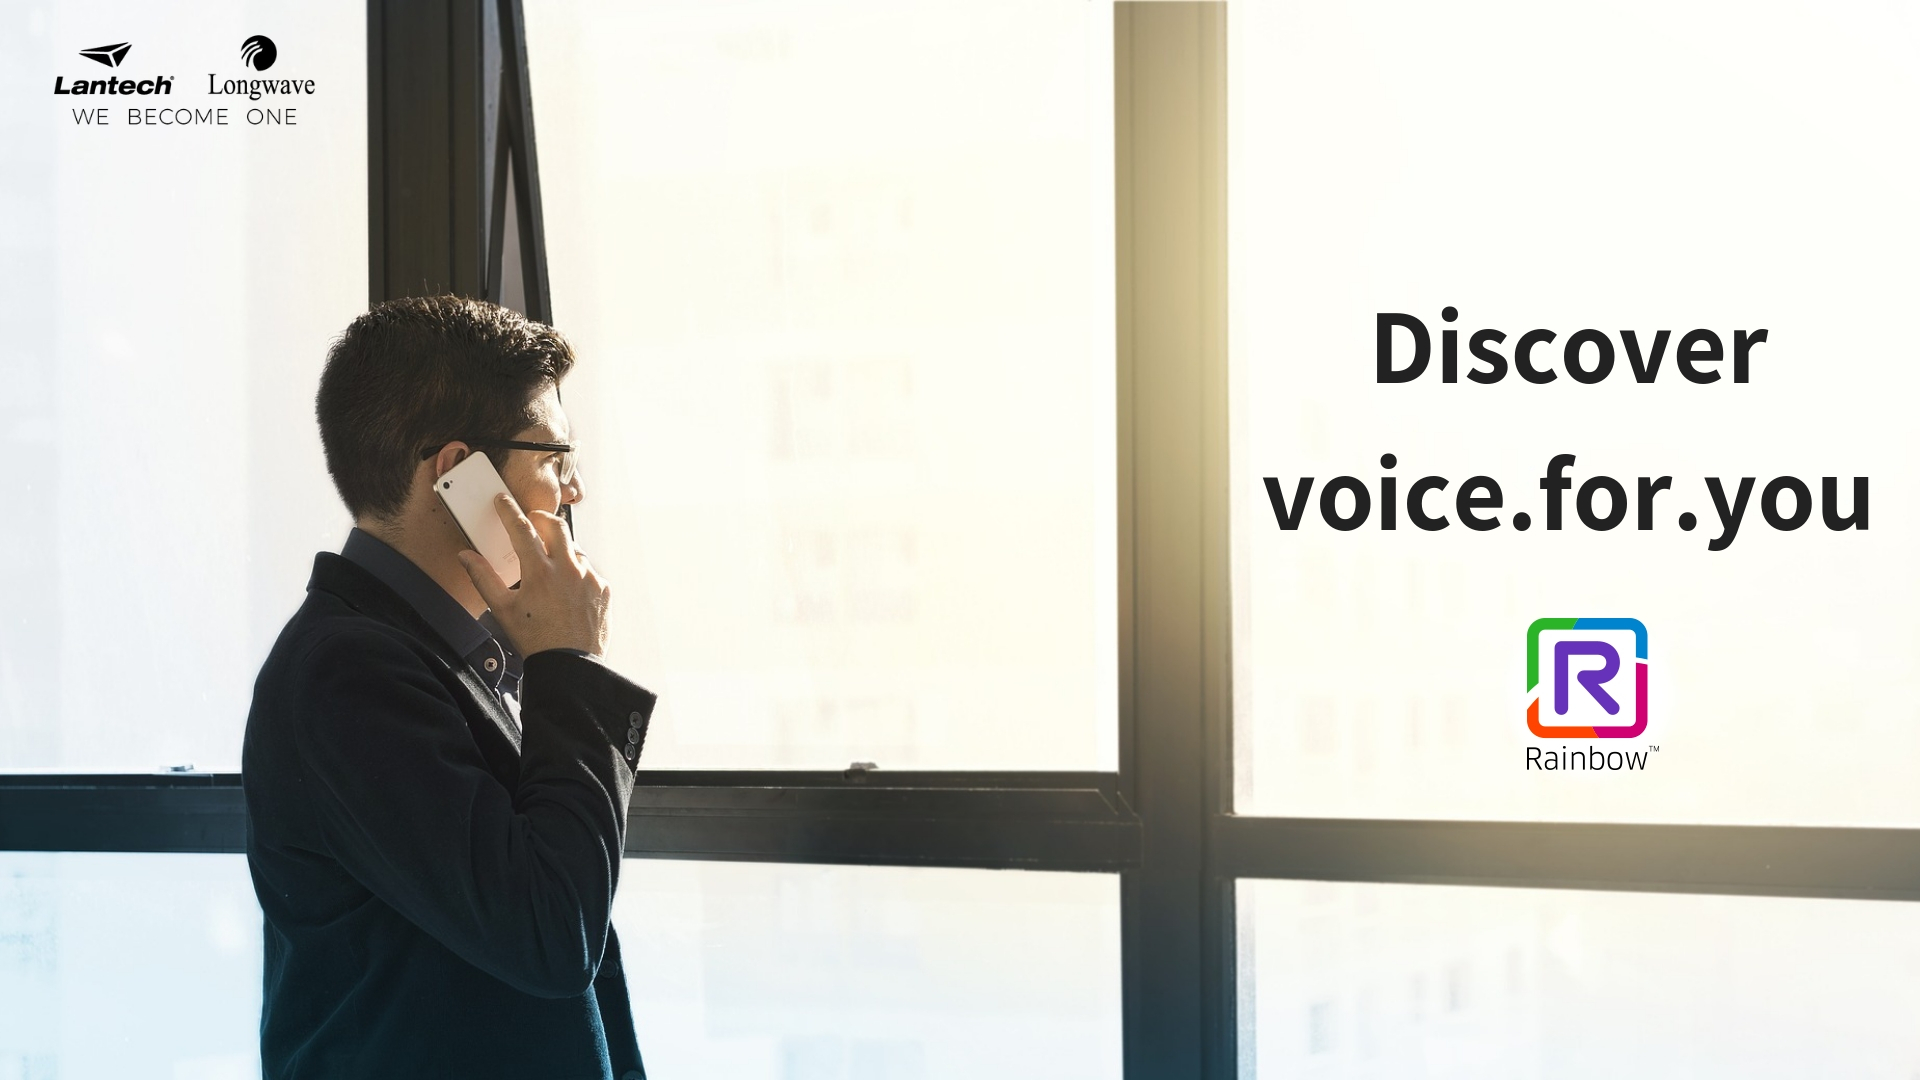 Discover voice.for.you!